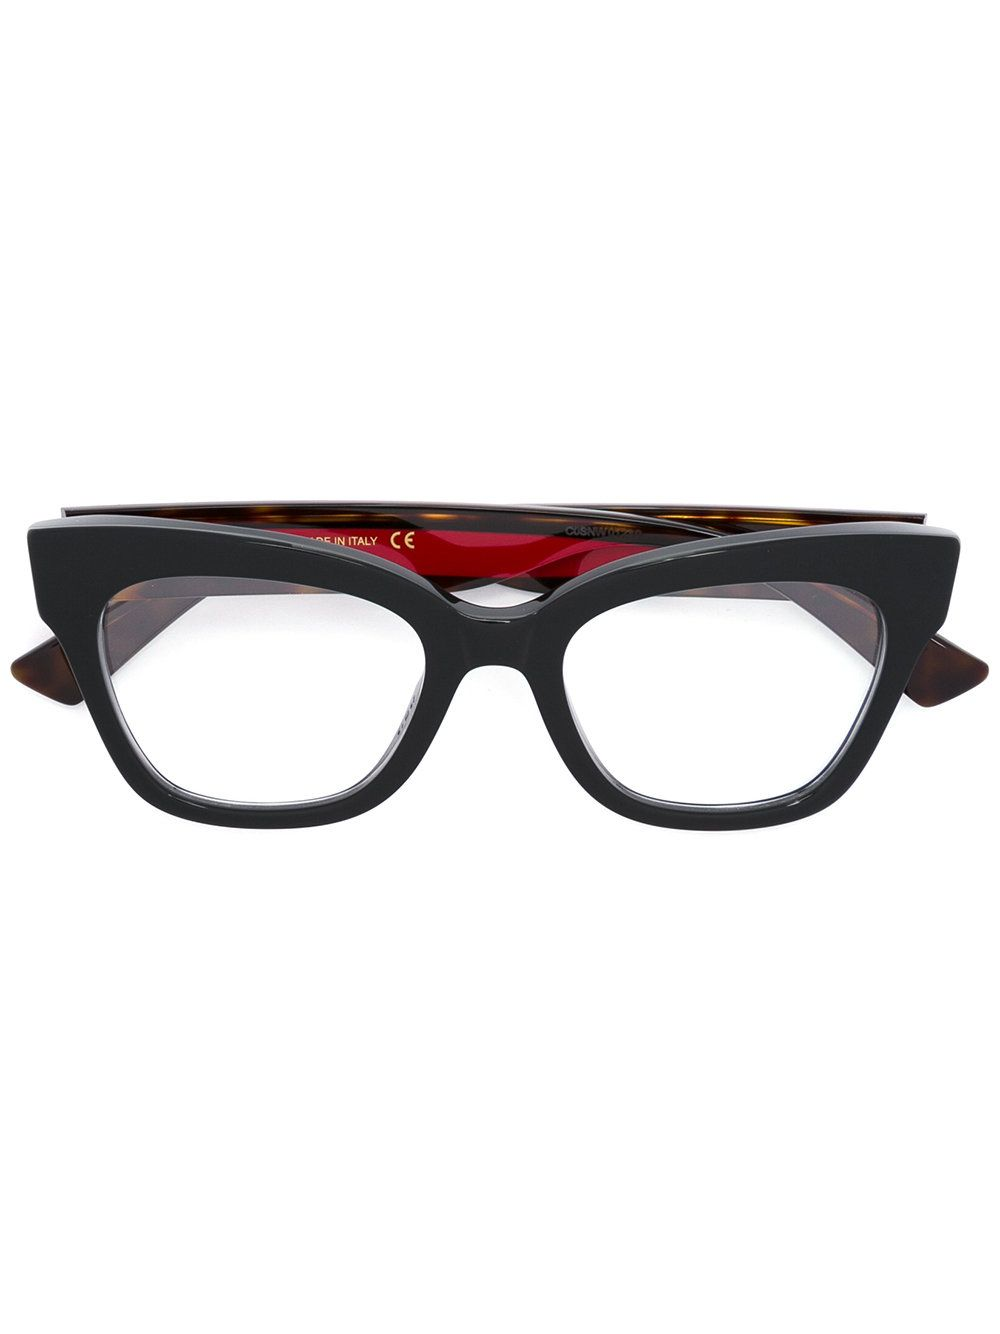 48158a4d0b356 Gucci Eyewear cat eye square glasses